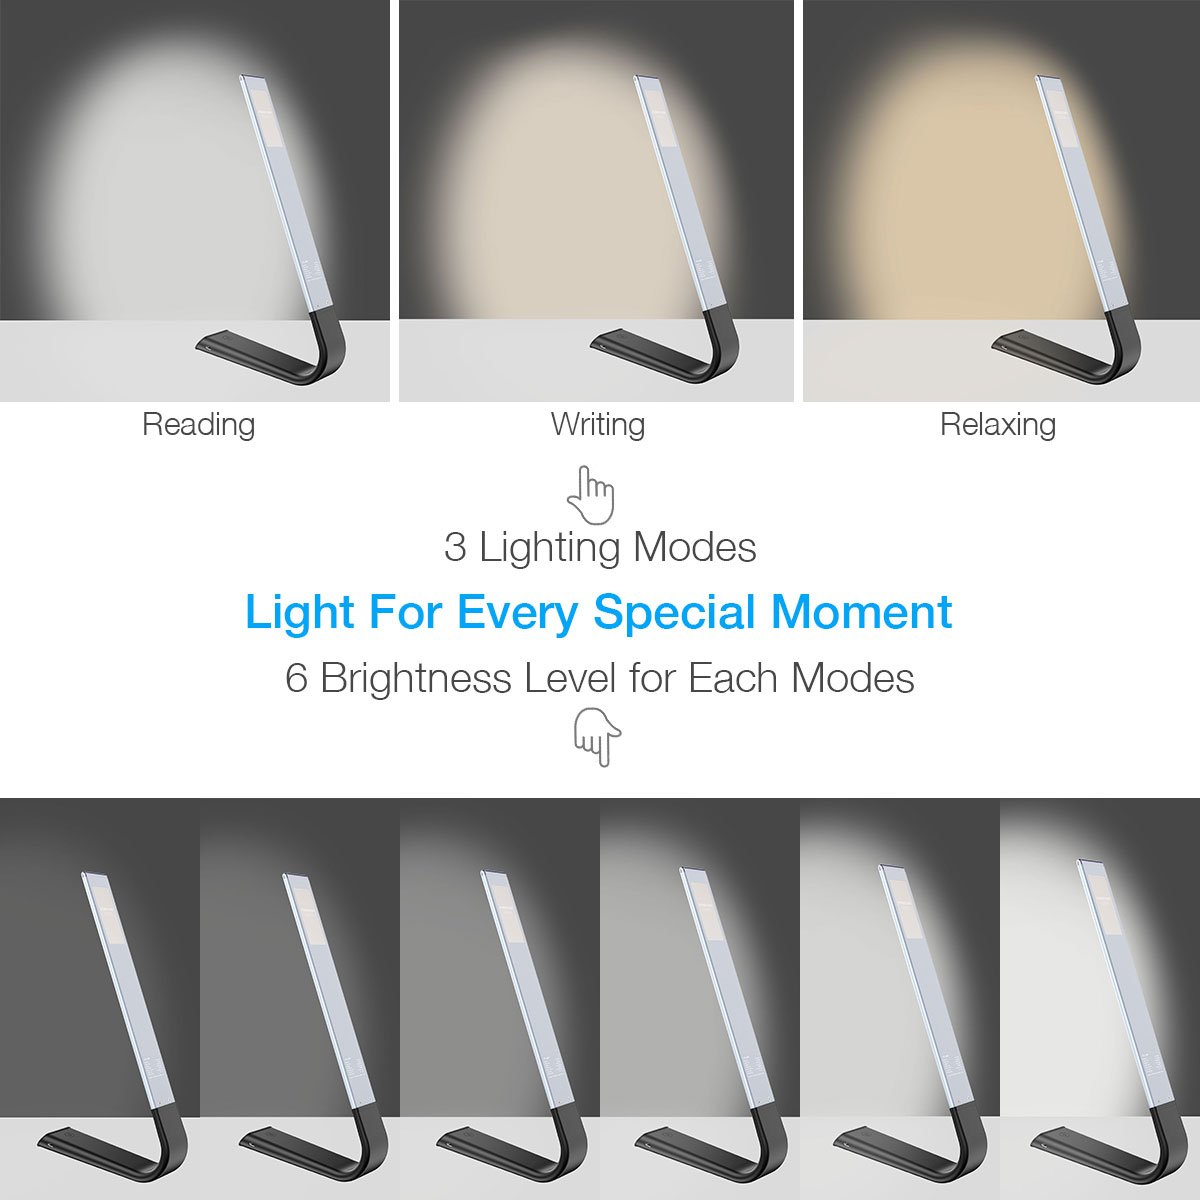 Poweradd LED Desk Lamp, Eye Caring Table Lamp with USB Charging Port, 6 Brightness Levels and 3 Color Temperature Modes Dimmable Touch Sensitive Control, Memory Function, Foldable Table Light